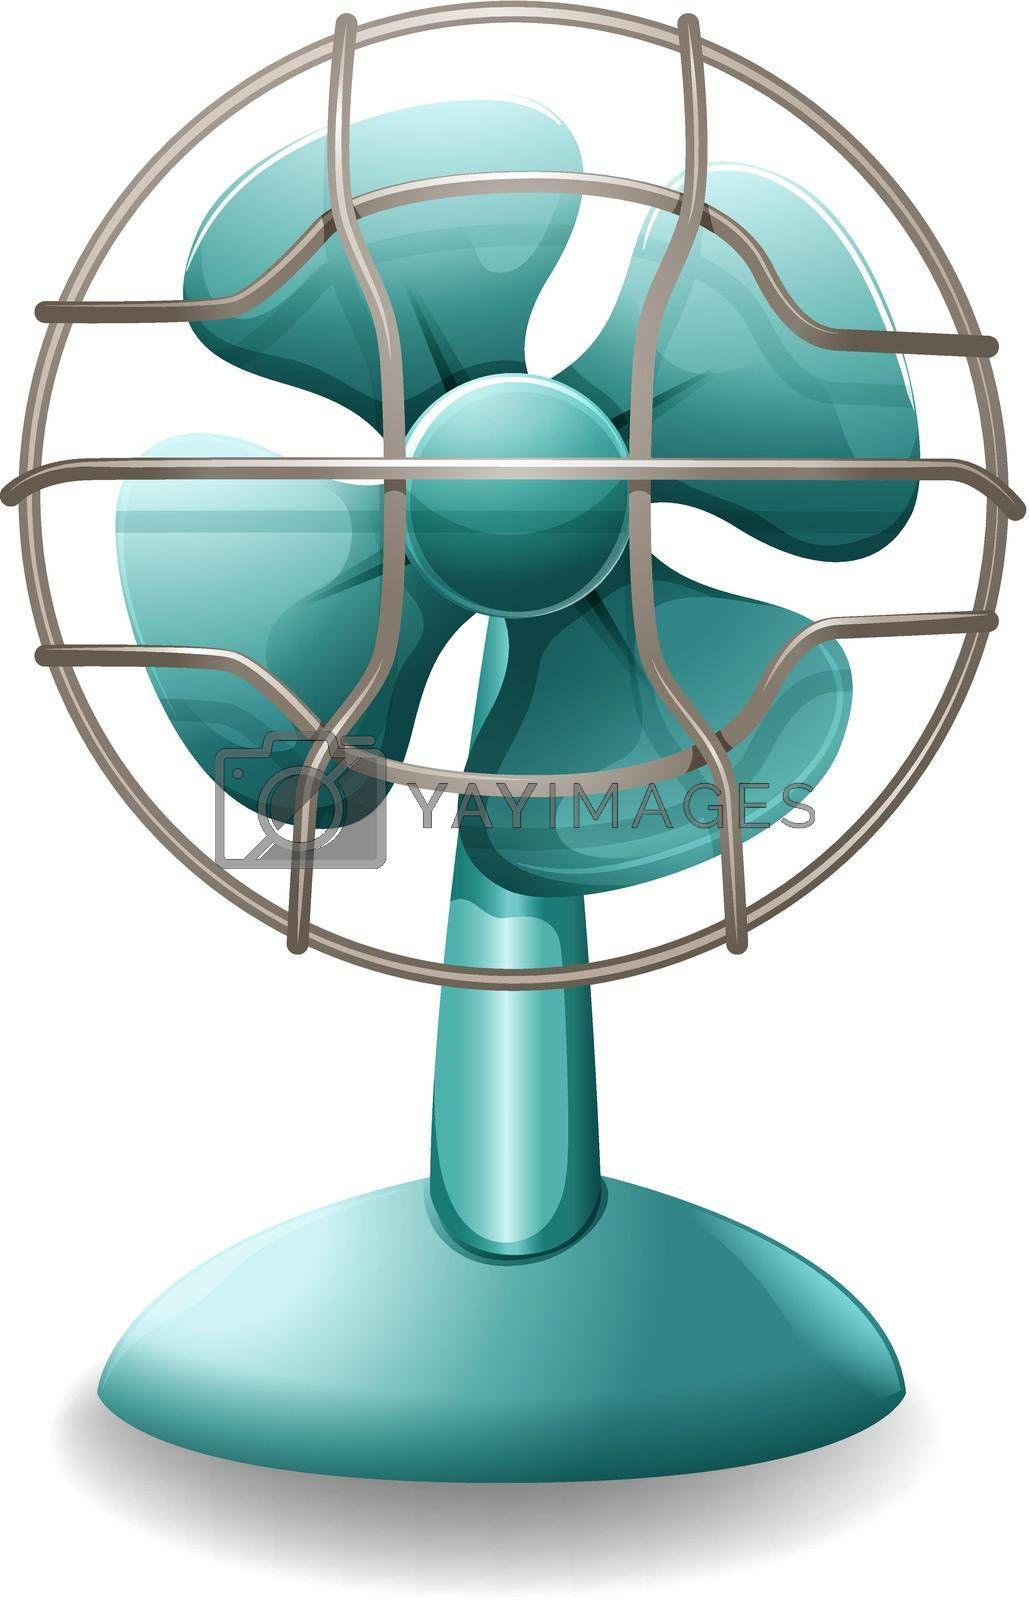 Royalty free image of Electric fan by iimages